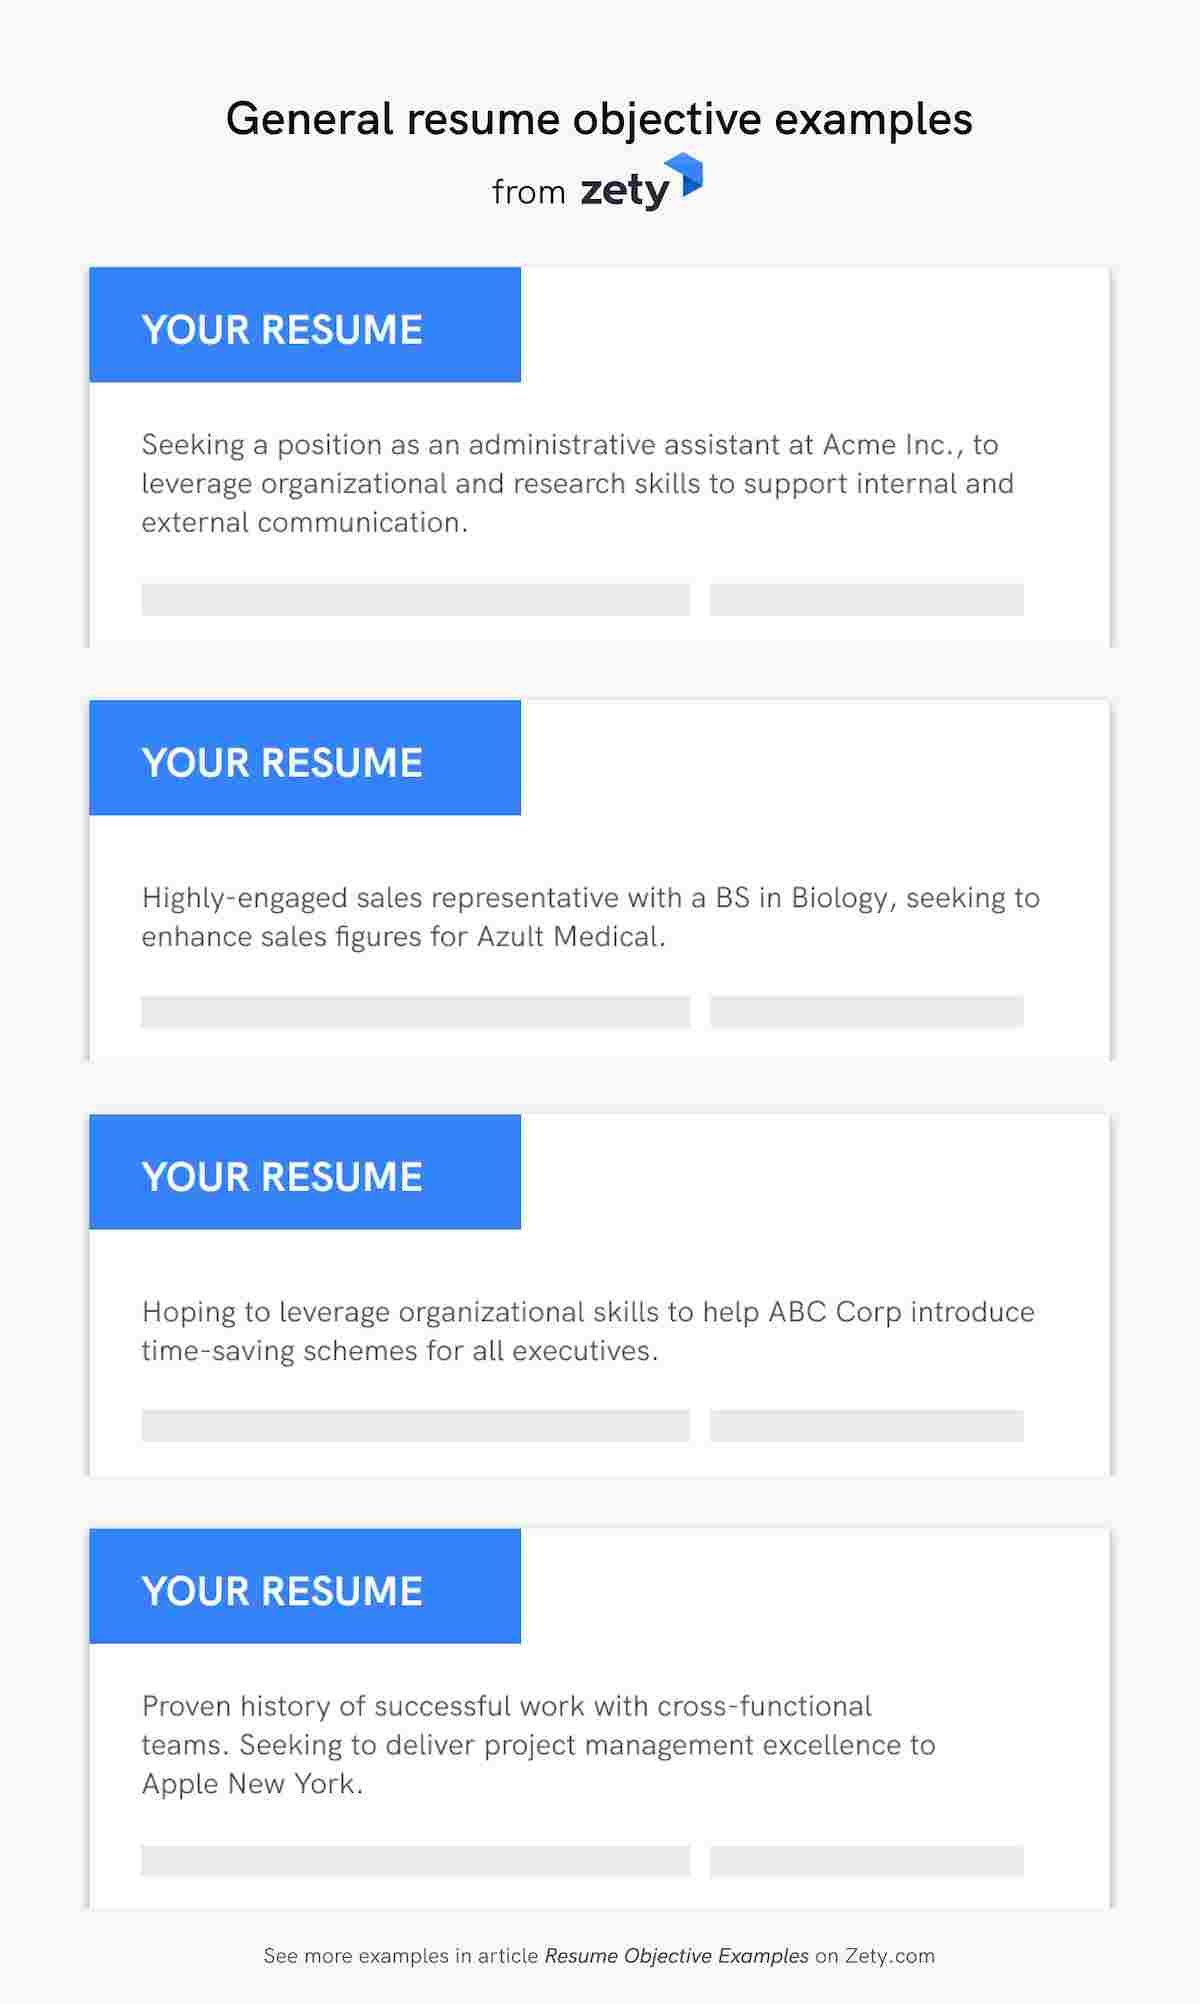 resume objective examples career objectives for all jobs management general or summary Resume Resume Objective Examples For Management